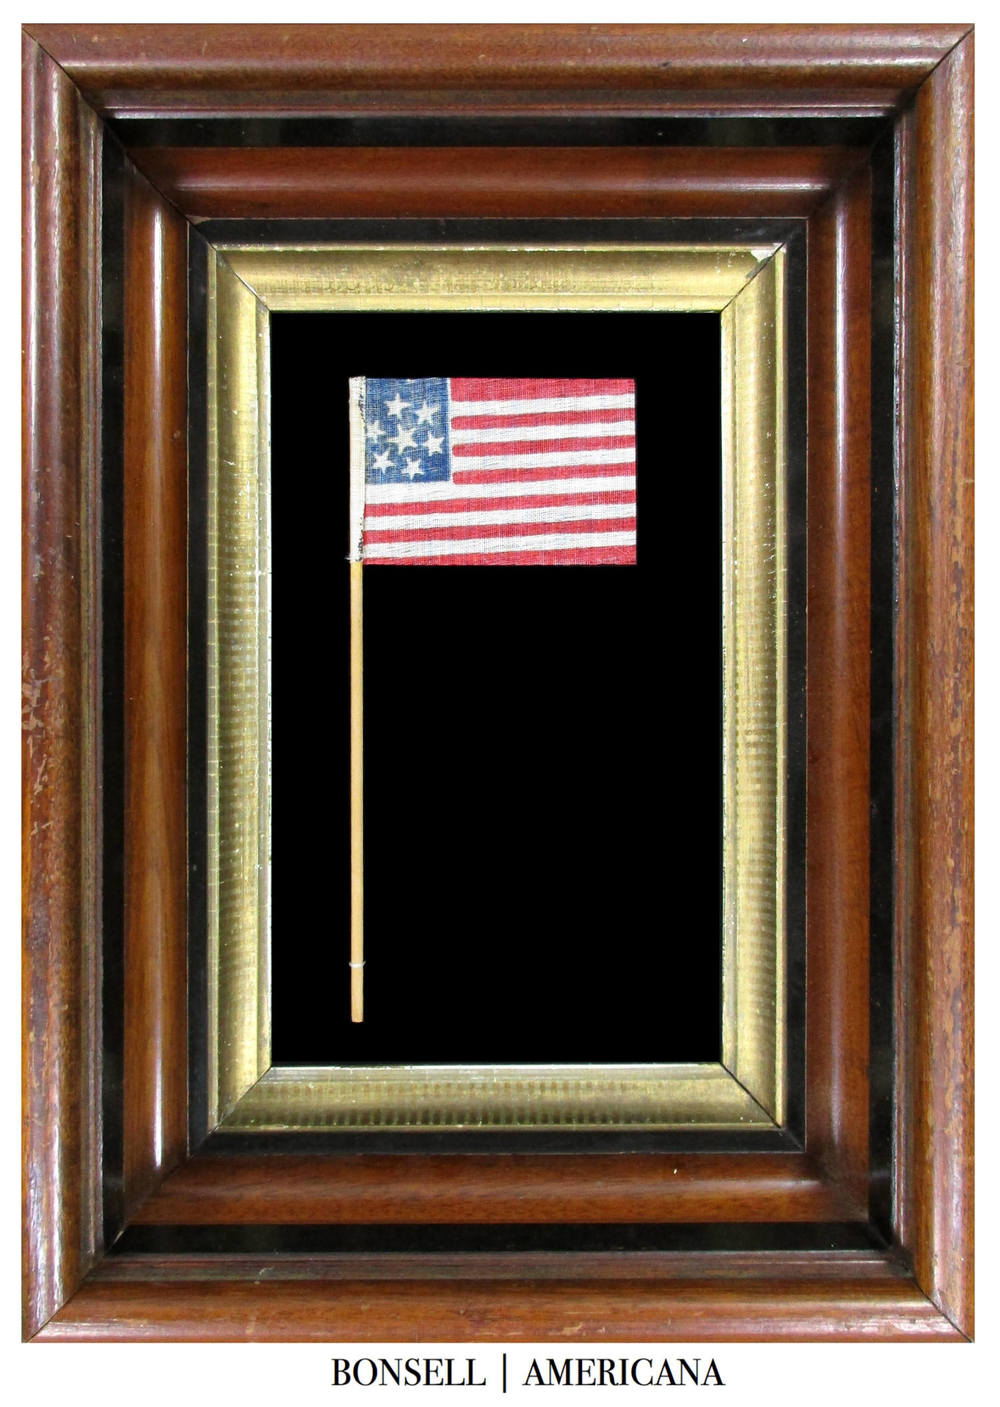 7 Star Antique American Flag